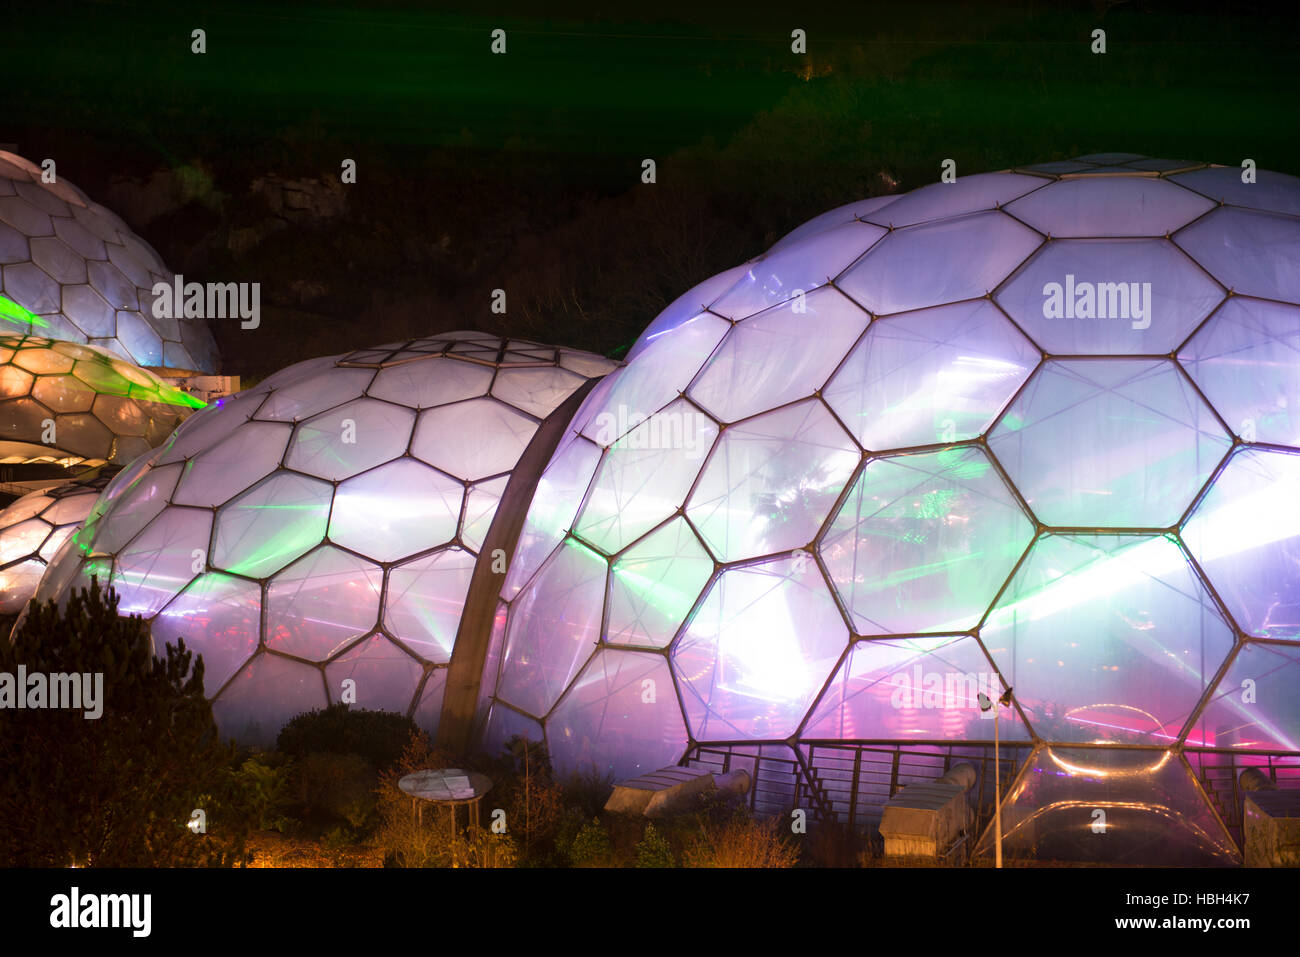 Image taken at the Eden Project for the Festival of Light and Sound - Stock Image